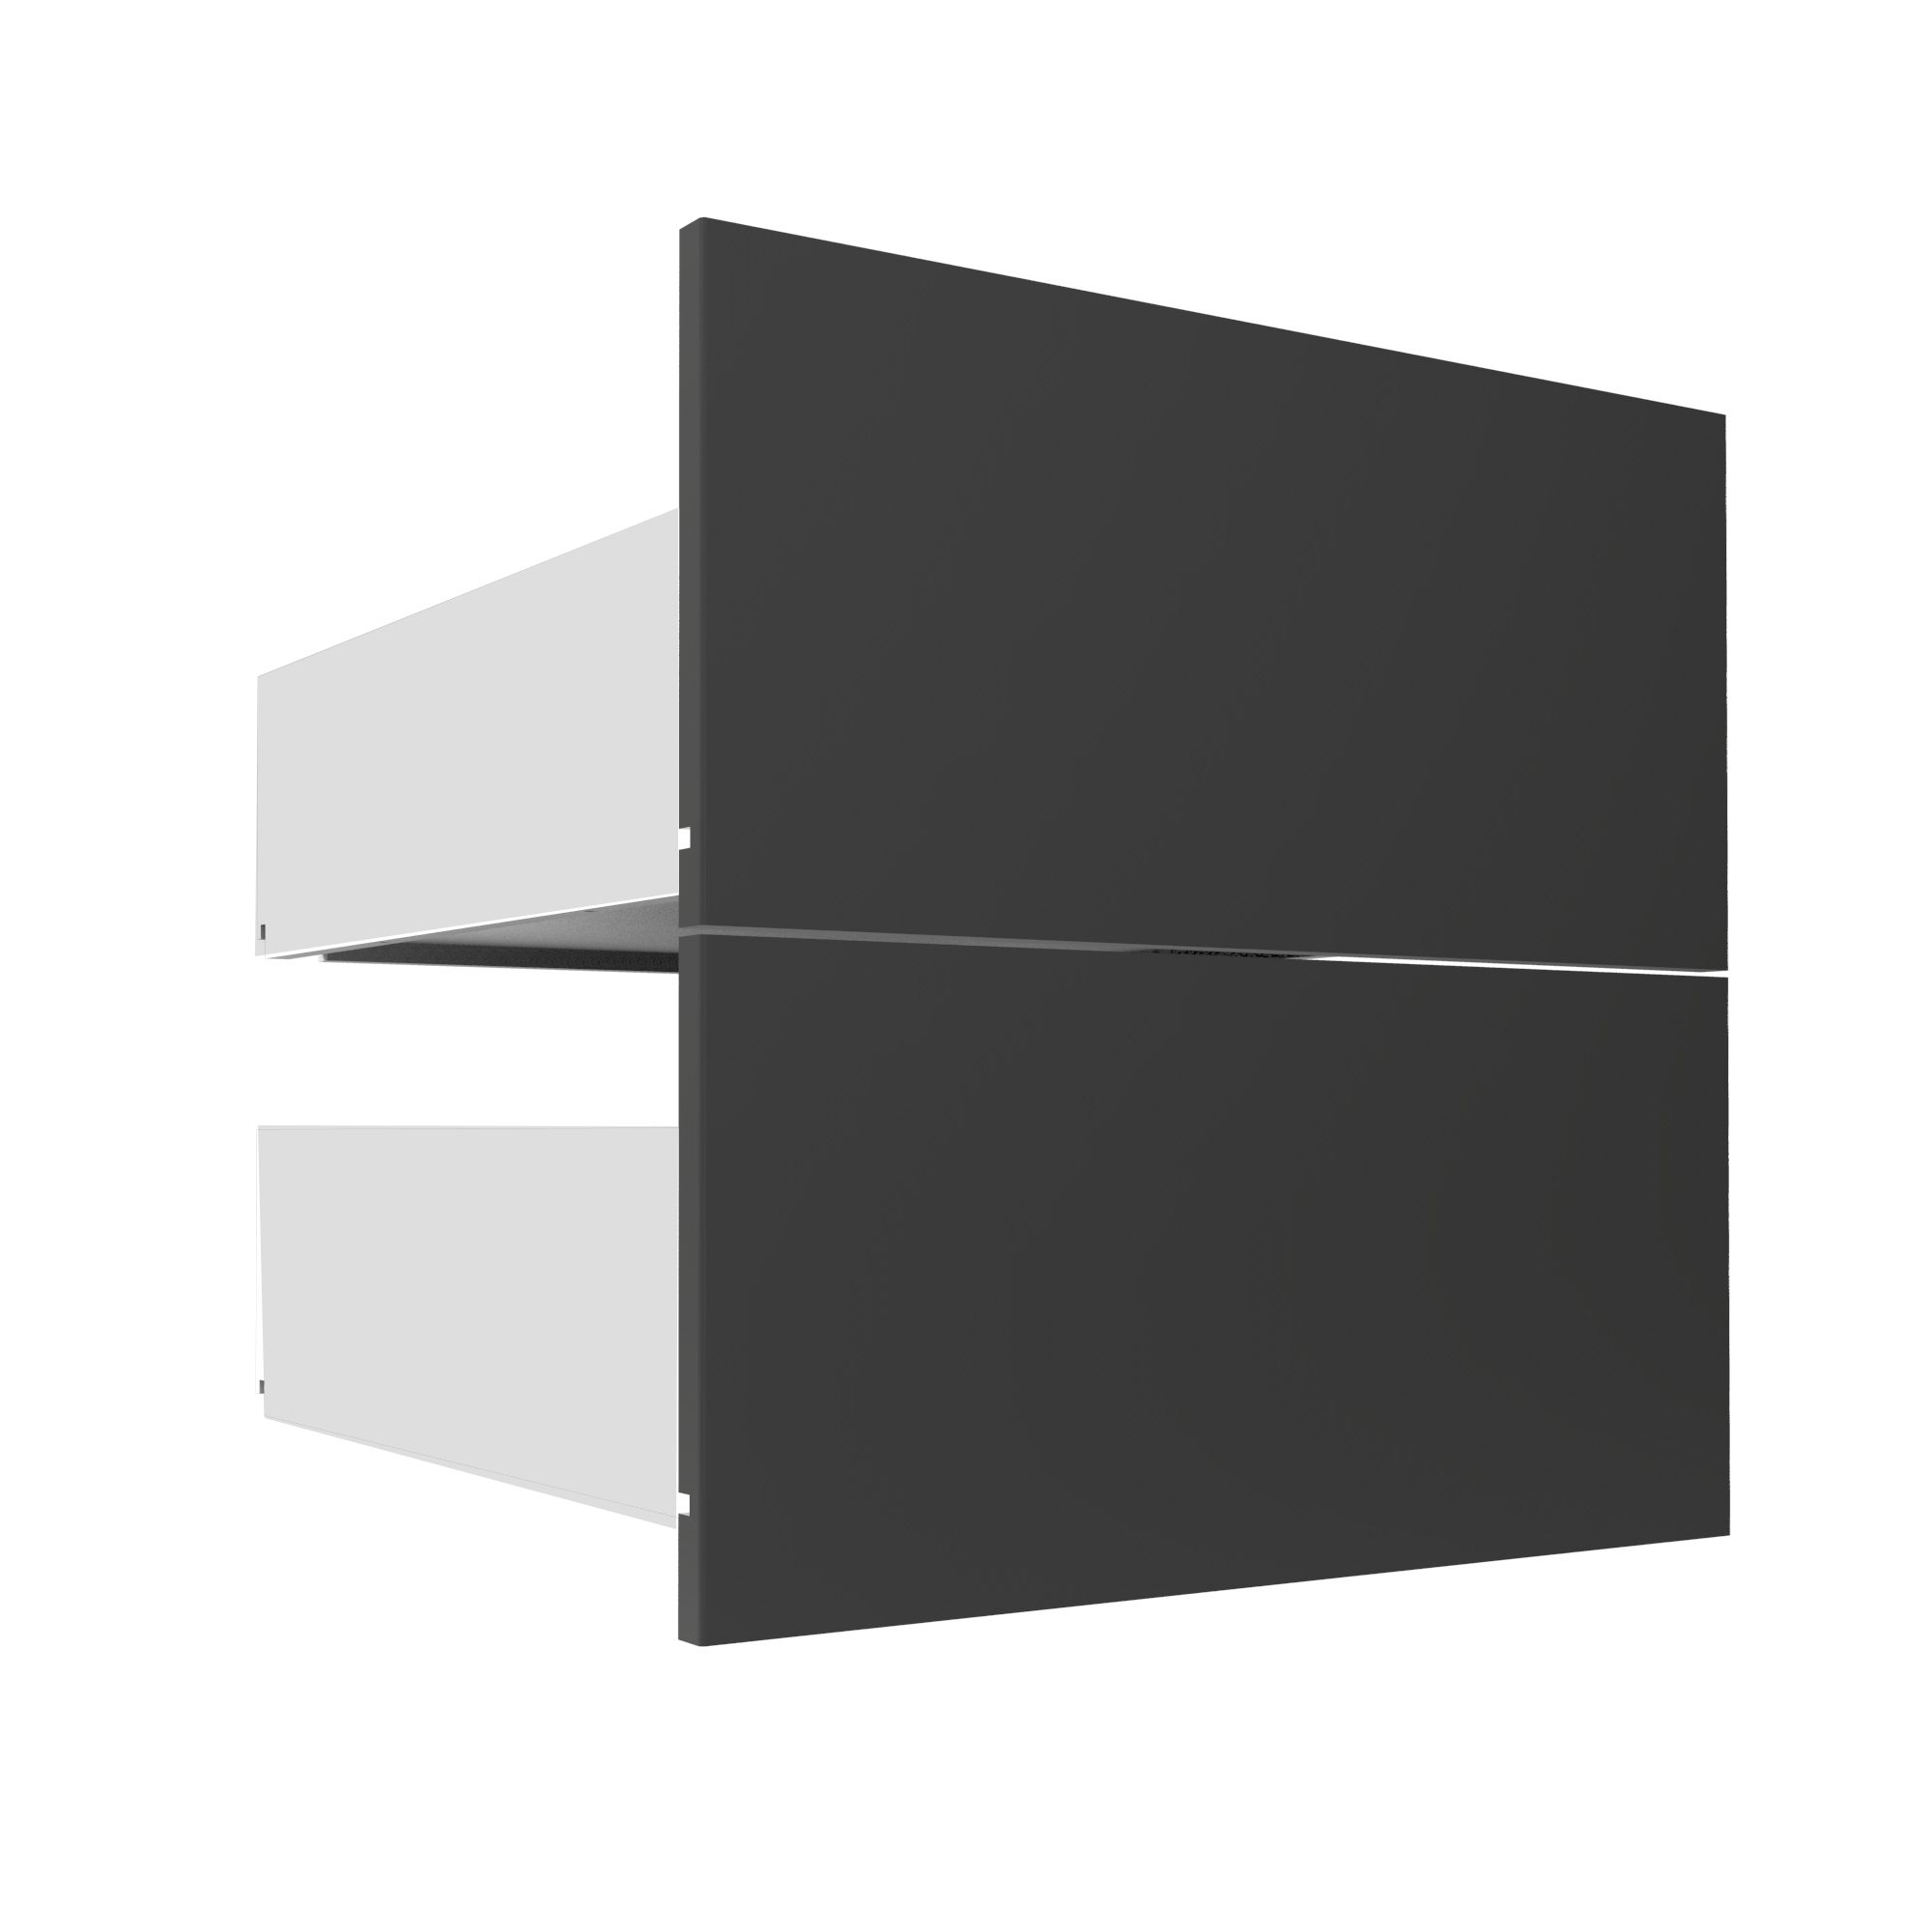 Darwin Modular Anthracite & Gloss External Drawers (h)237mm (w)500mm (d)566mm